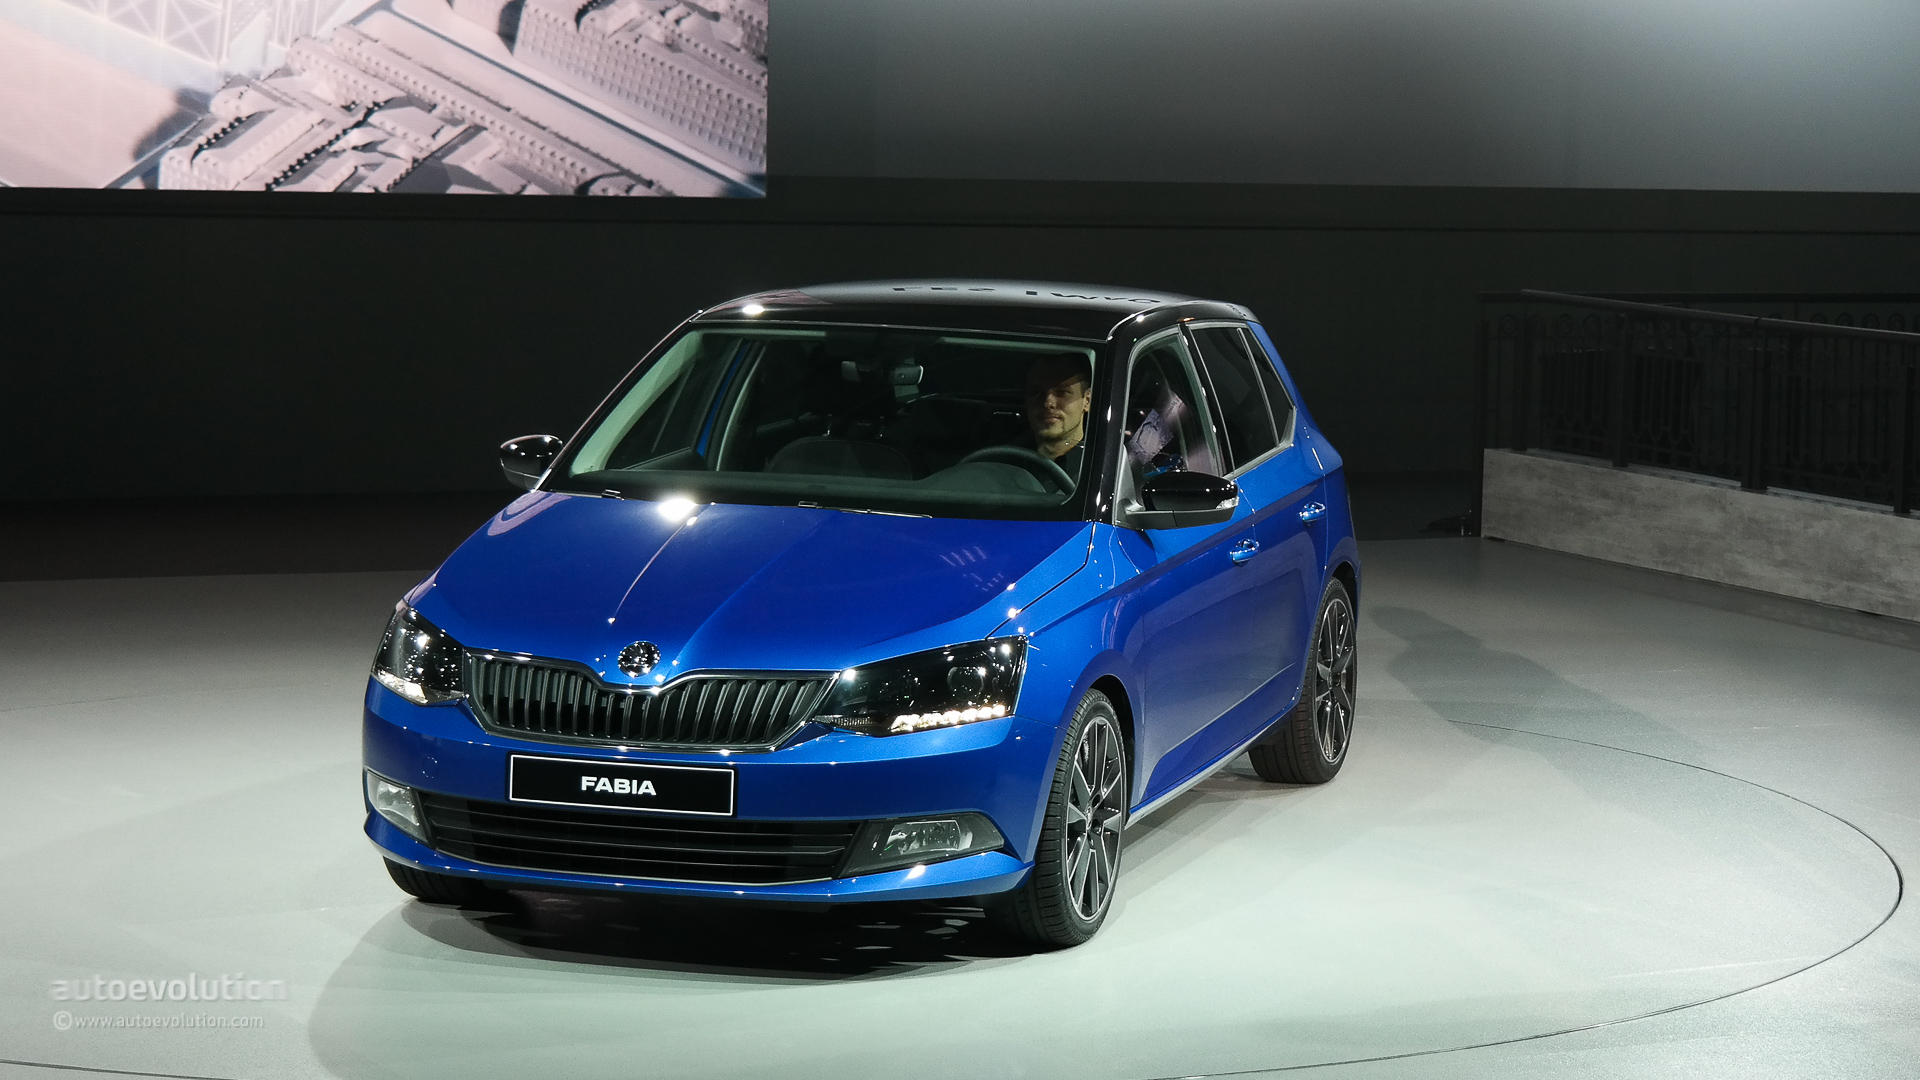 Ford Fiesta Hatchback >> New Skoda Fabia Displayed at the Paris Motor Show in Hatchback Guise [Live Photos] - autoevolution